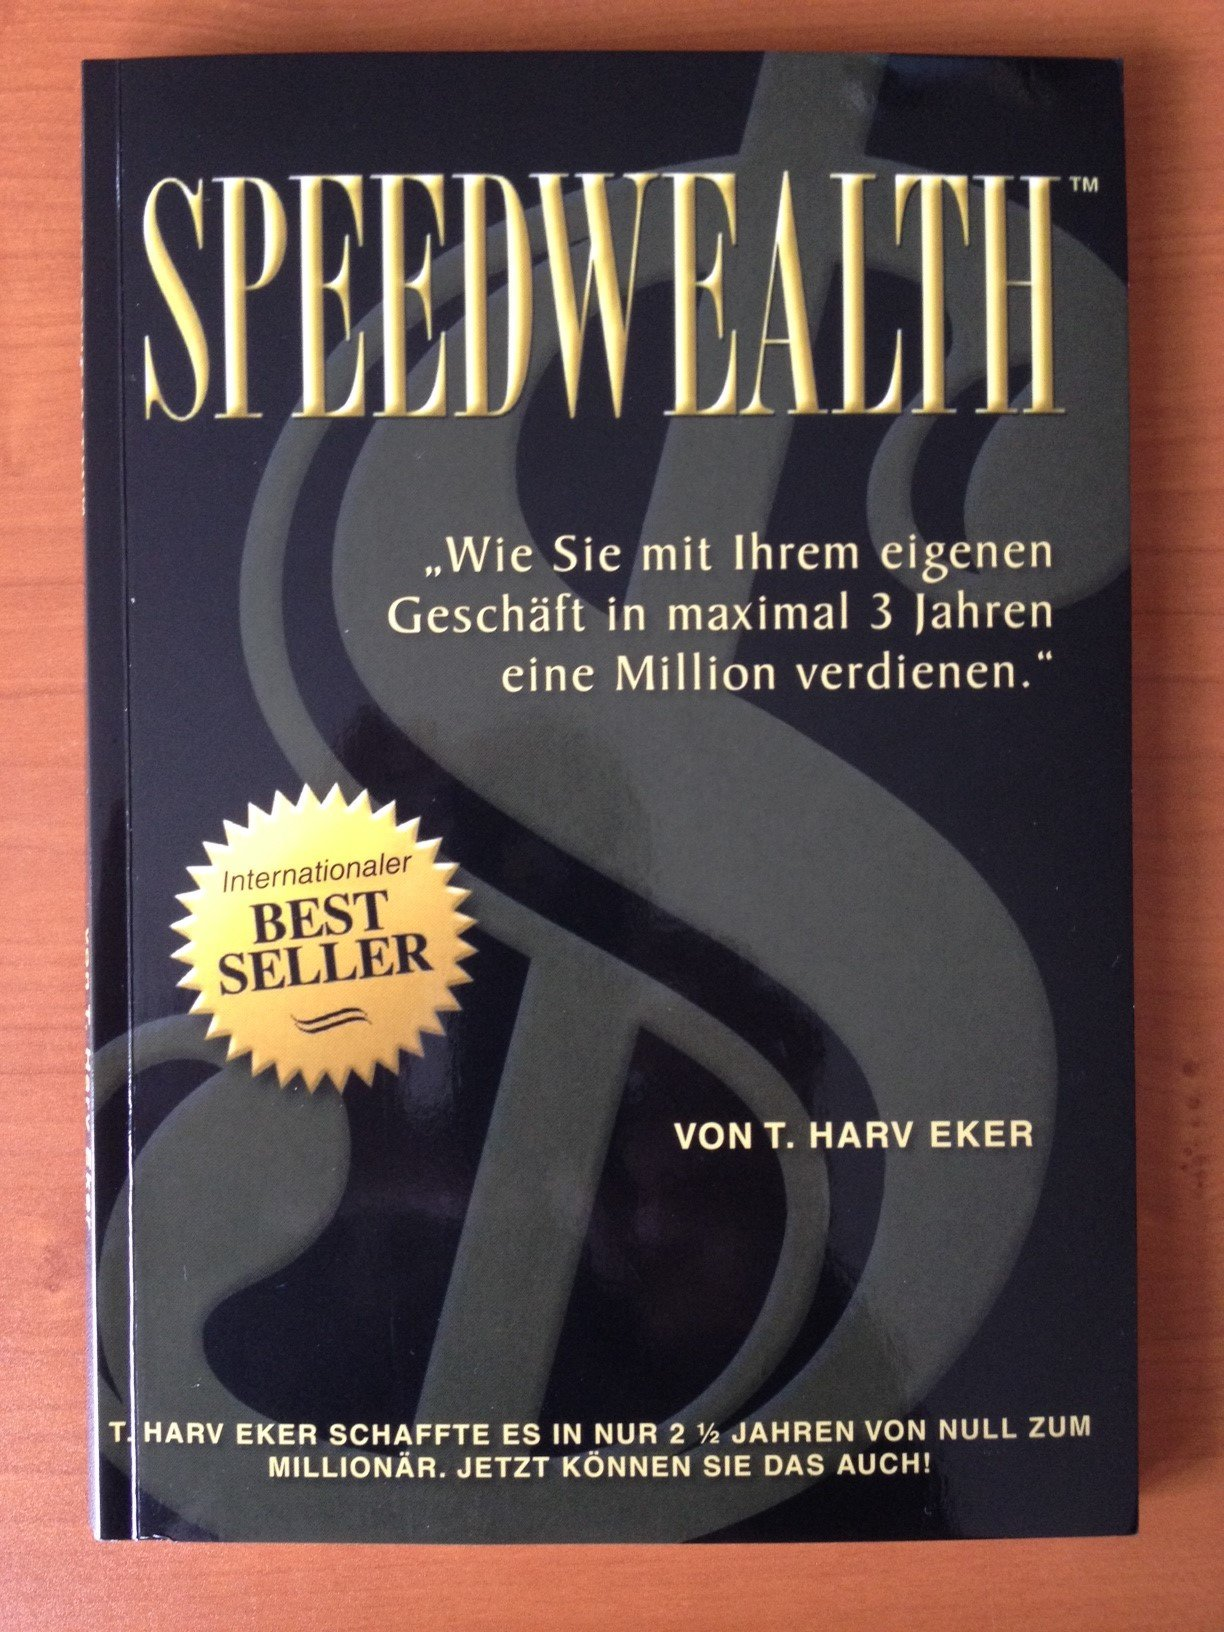 Speedwealth Amazon Co Uk T Harv Eker 9780968985502 Books